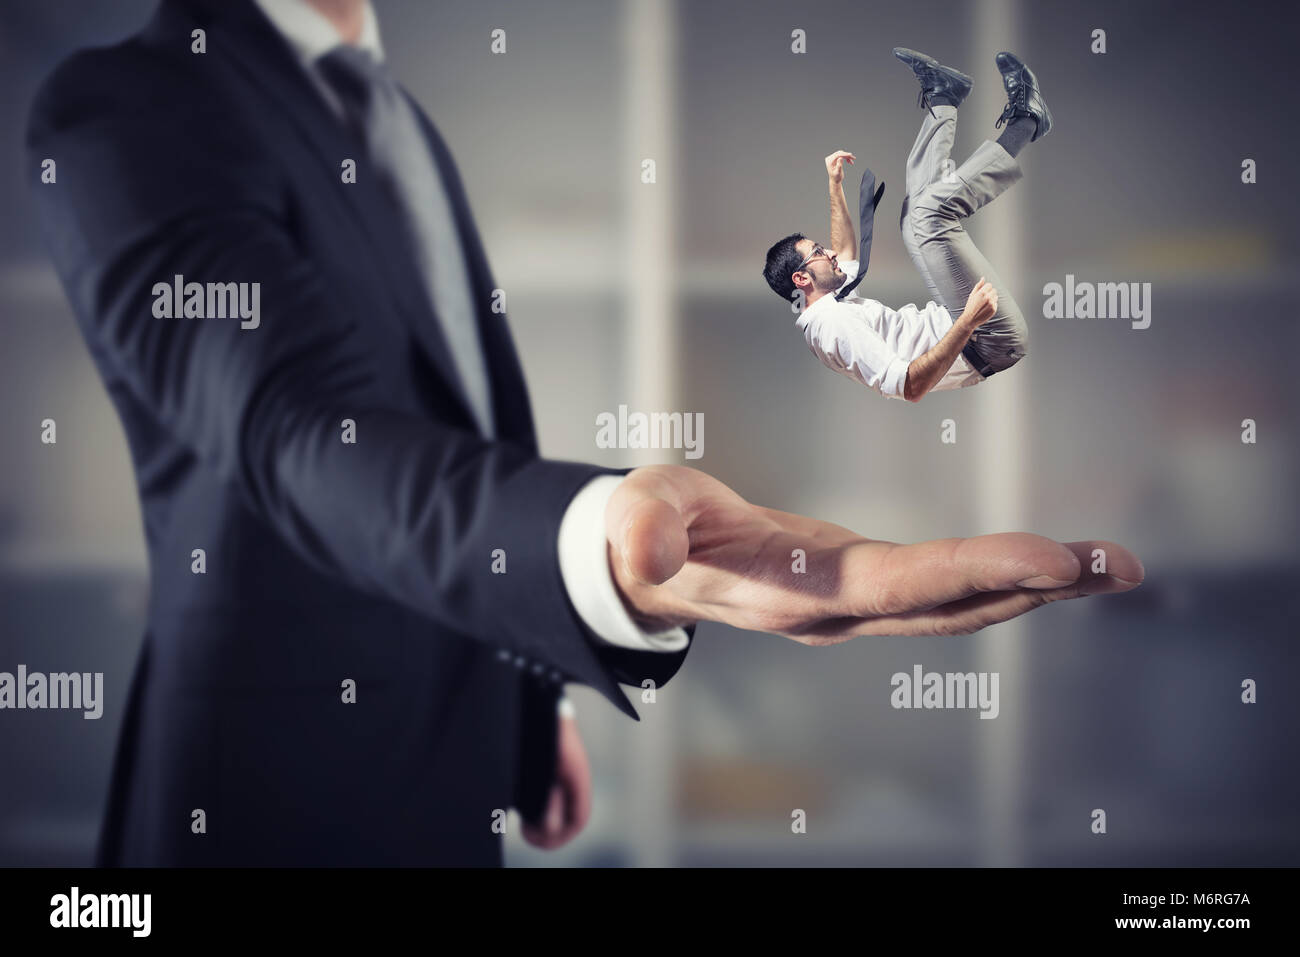 Businessman is saved from a big hand. Concept of business support and assistance - Stock Image